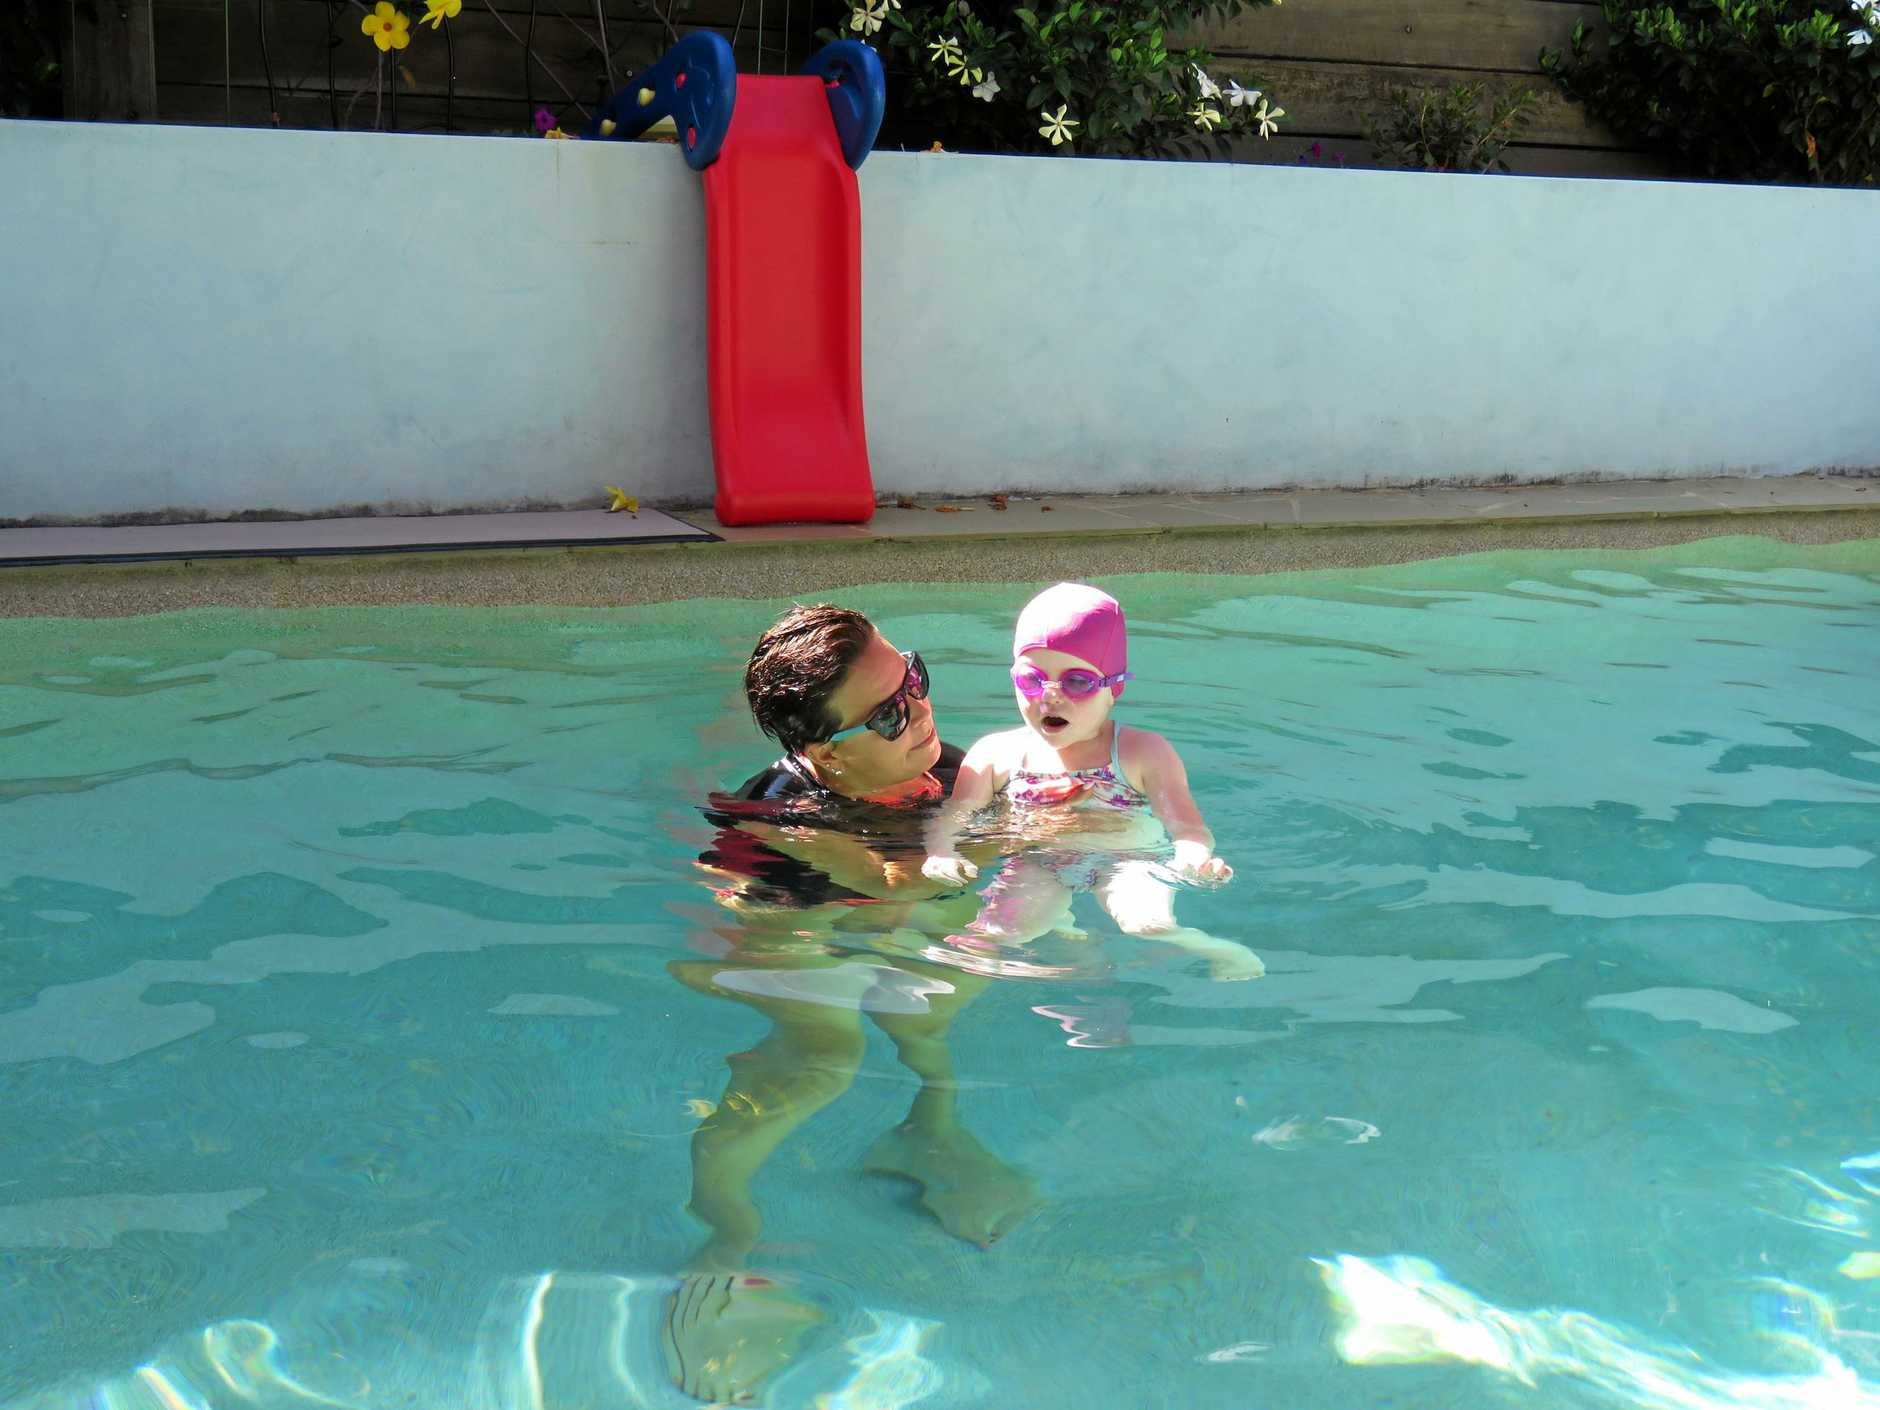 Alana Harber takes her three swim students through their paces at her home-based pool